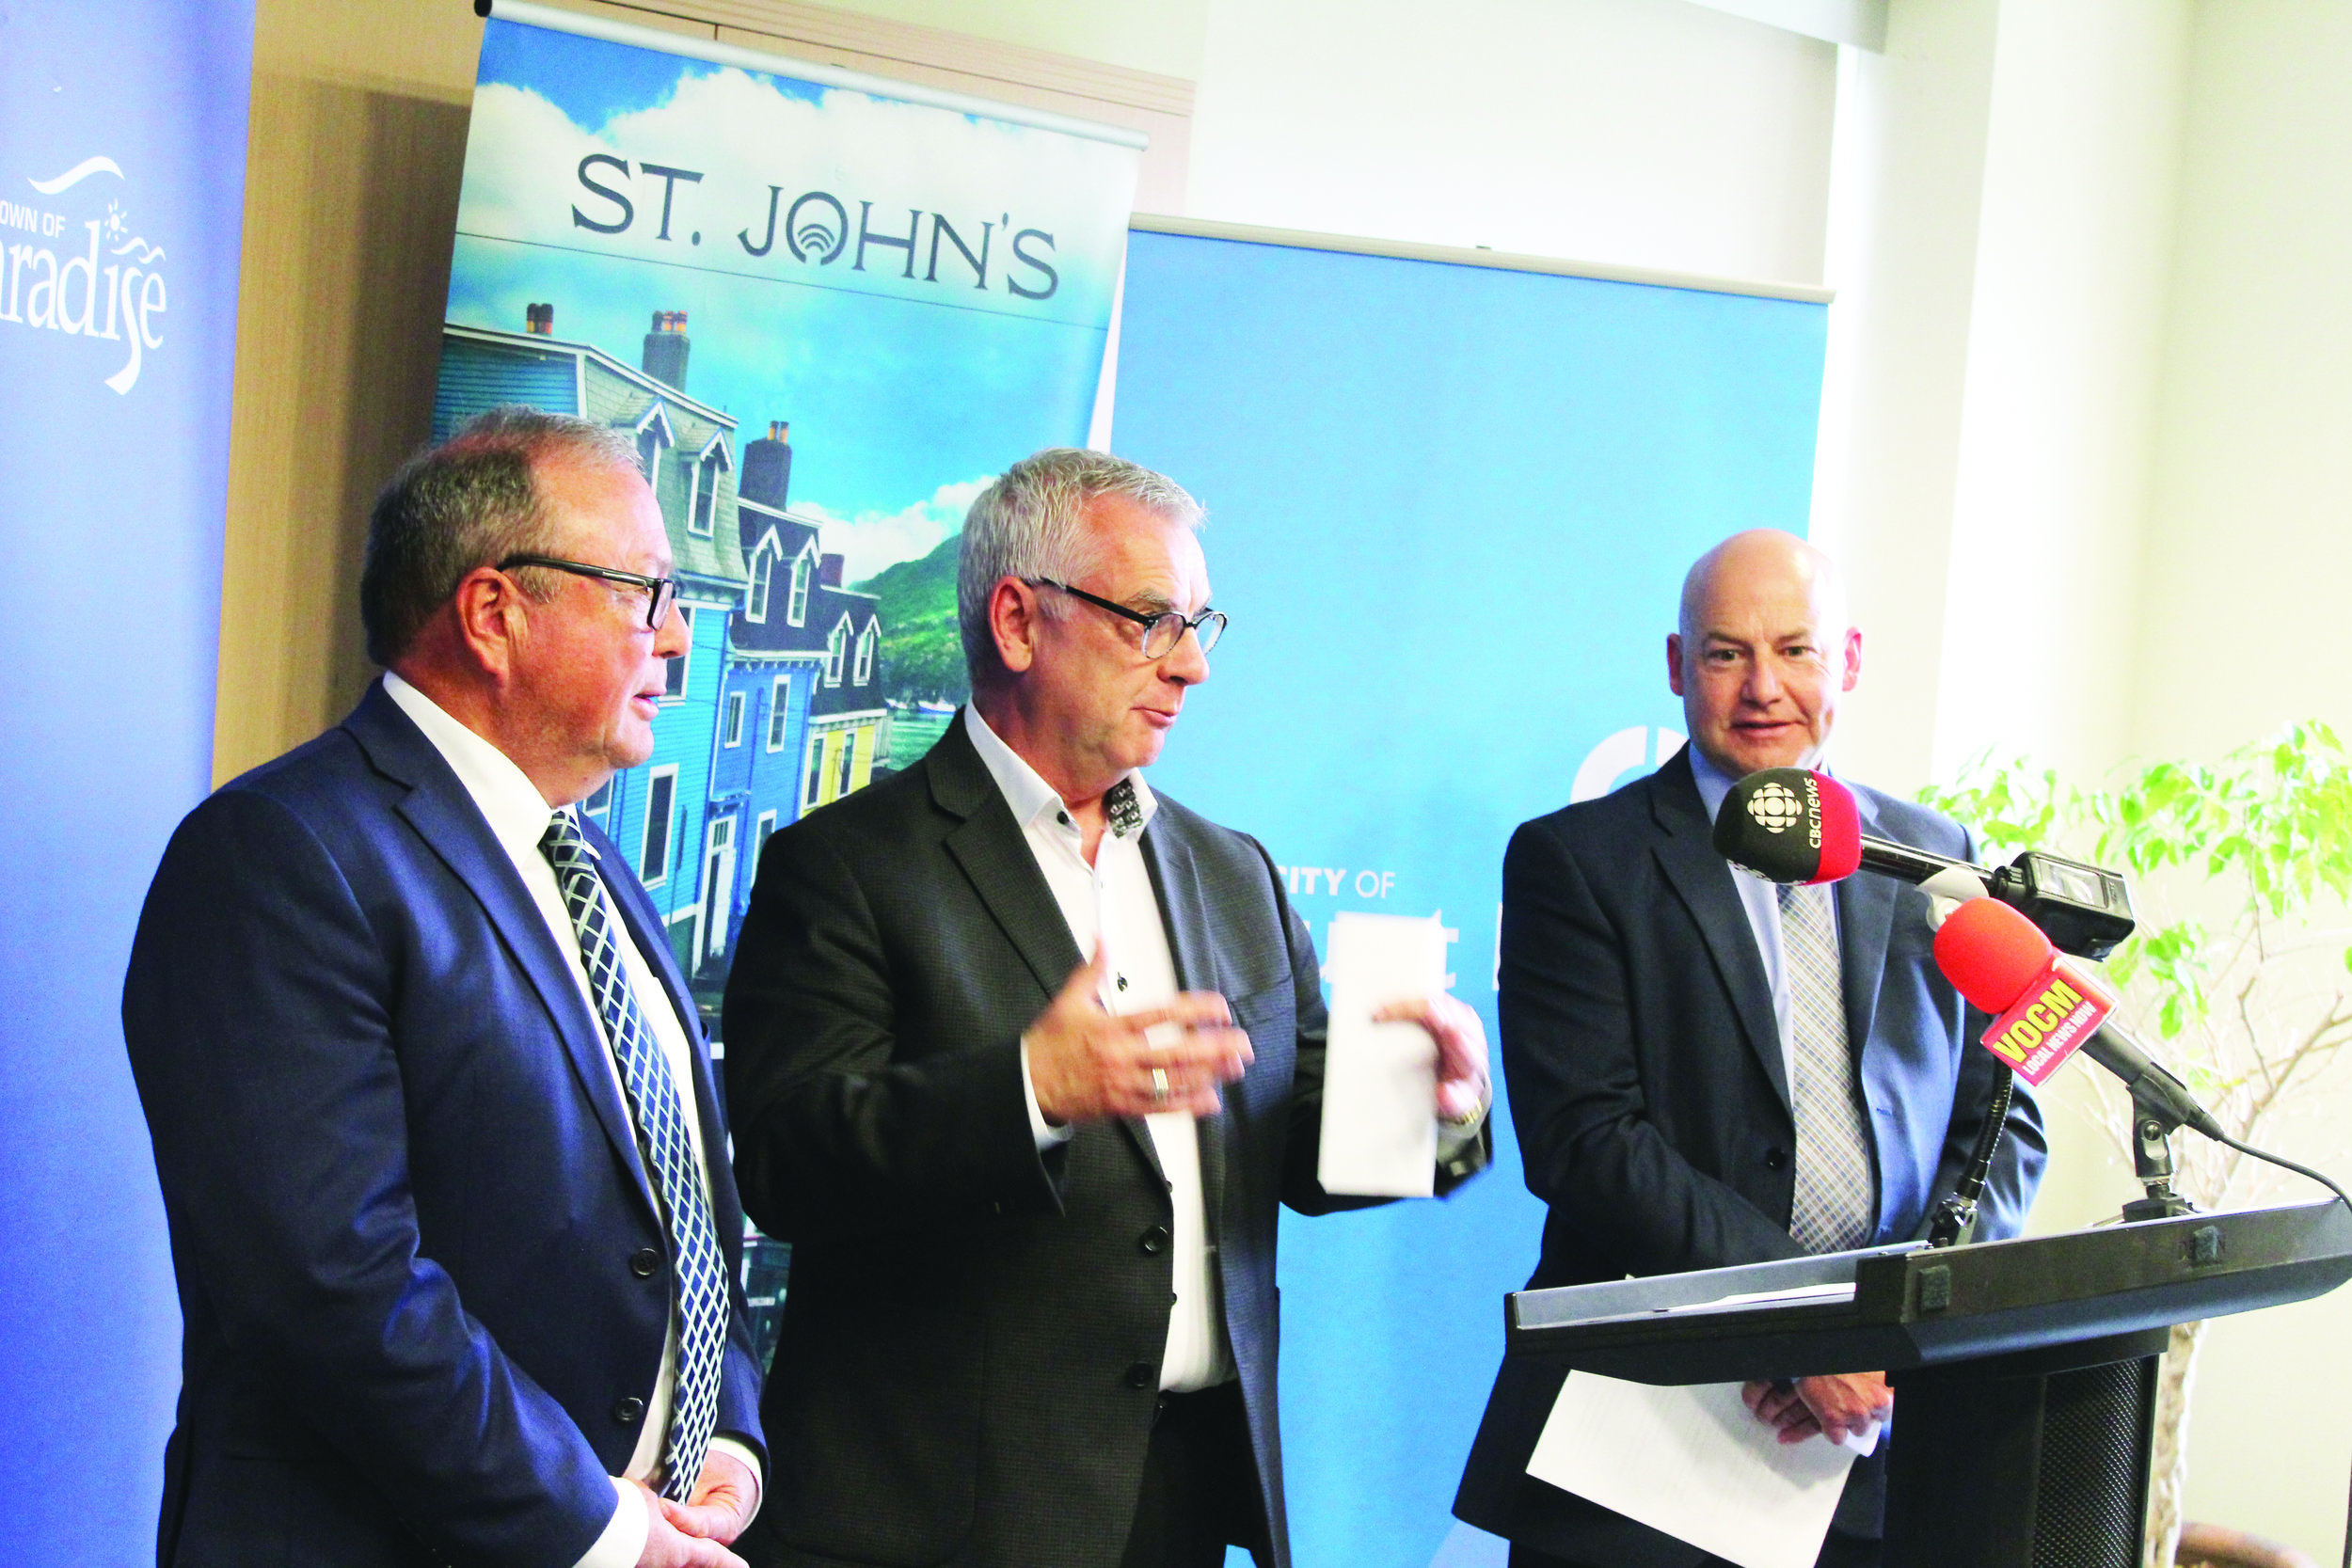 The mayors of Mount Pearl, Paradise, and St. John's say it's not possible to meet federal standards for wastewater treatment within the timeframe allowed. From left to right are Mount Pearl Mayor Dave Aker, St. John's Mayor Danny Breen, and Paradise Mayor Dan Bobbett. Mark Squibb photo